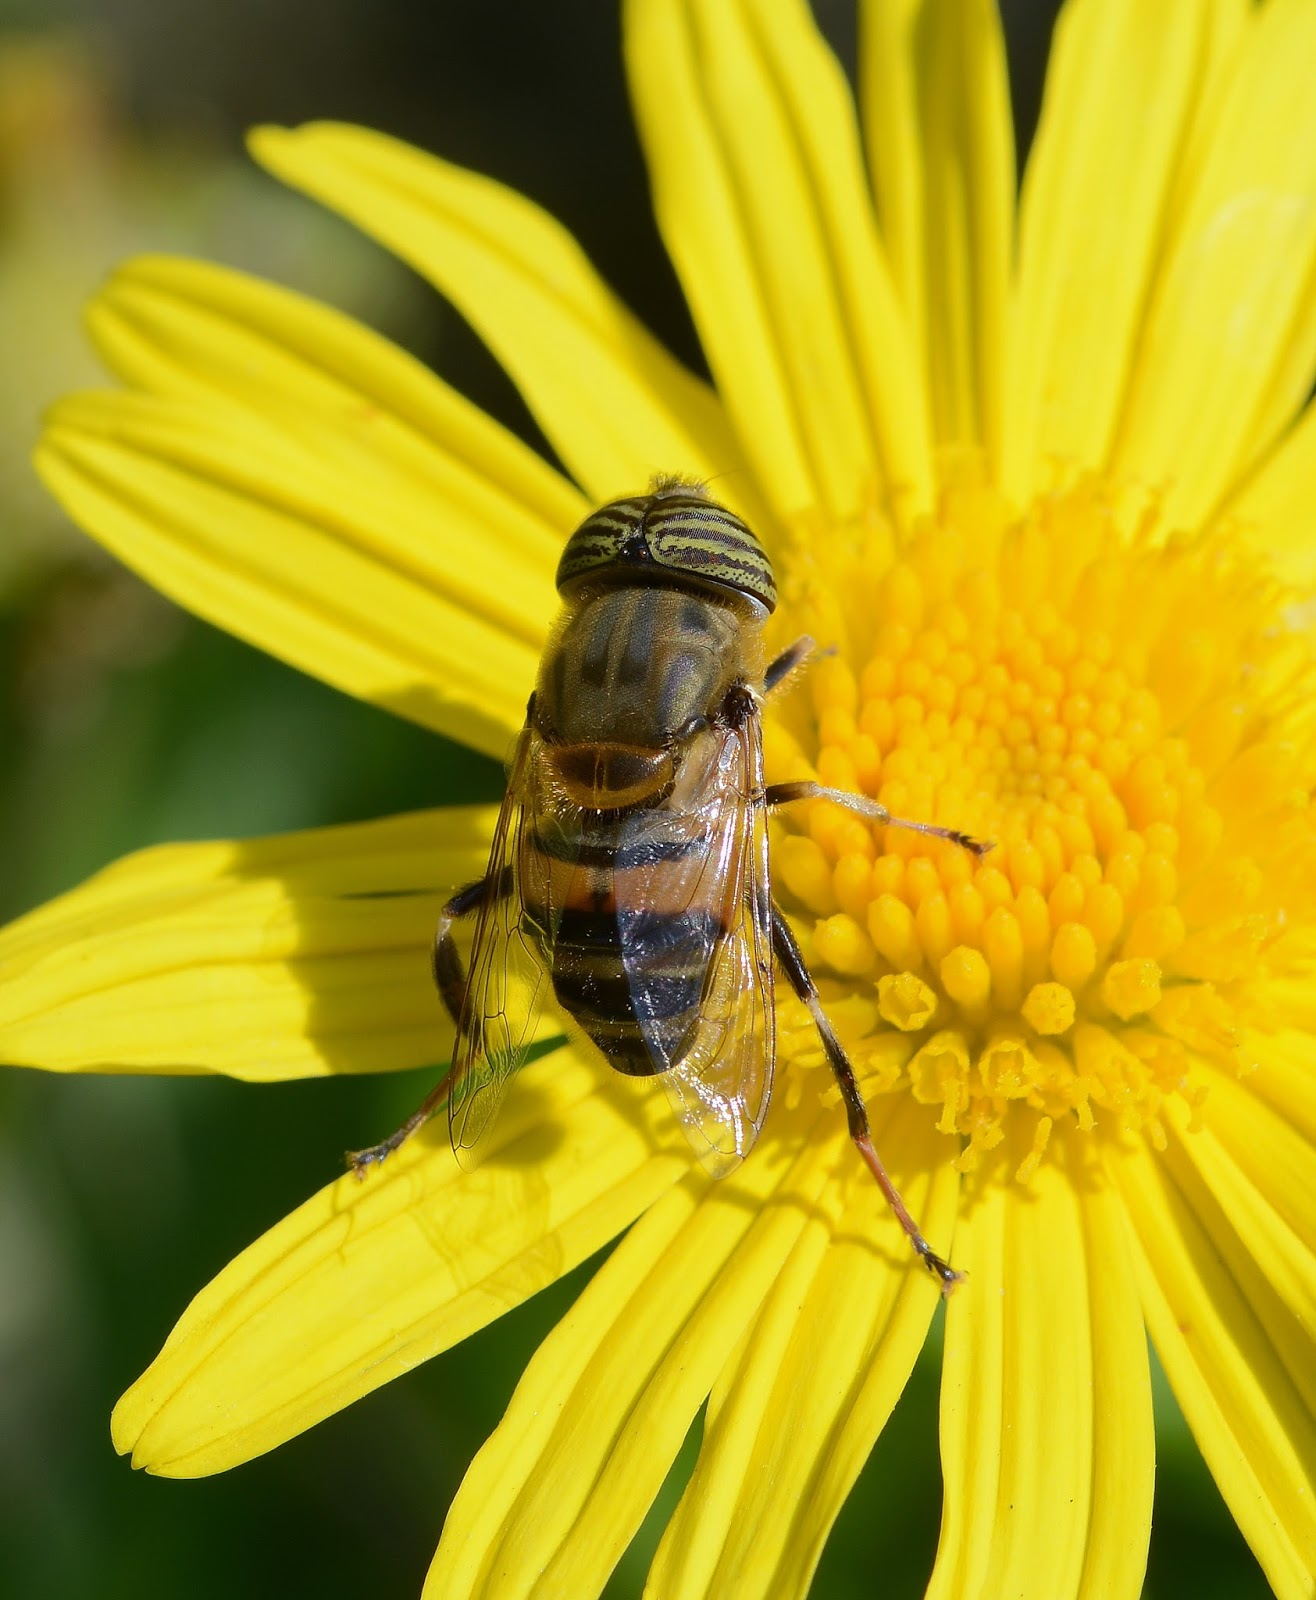 Insects: Eristalinus June